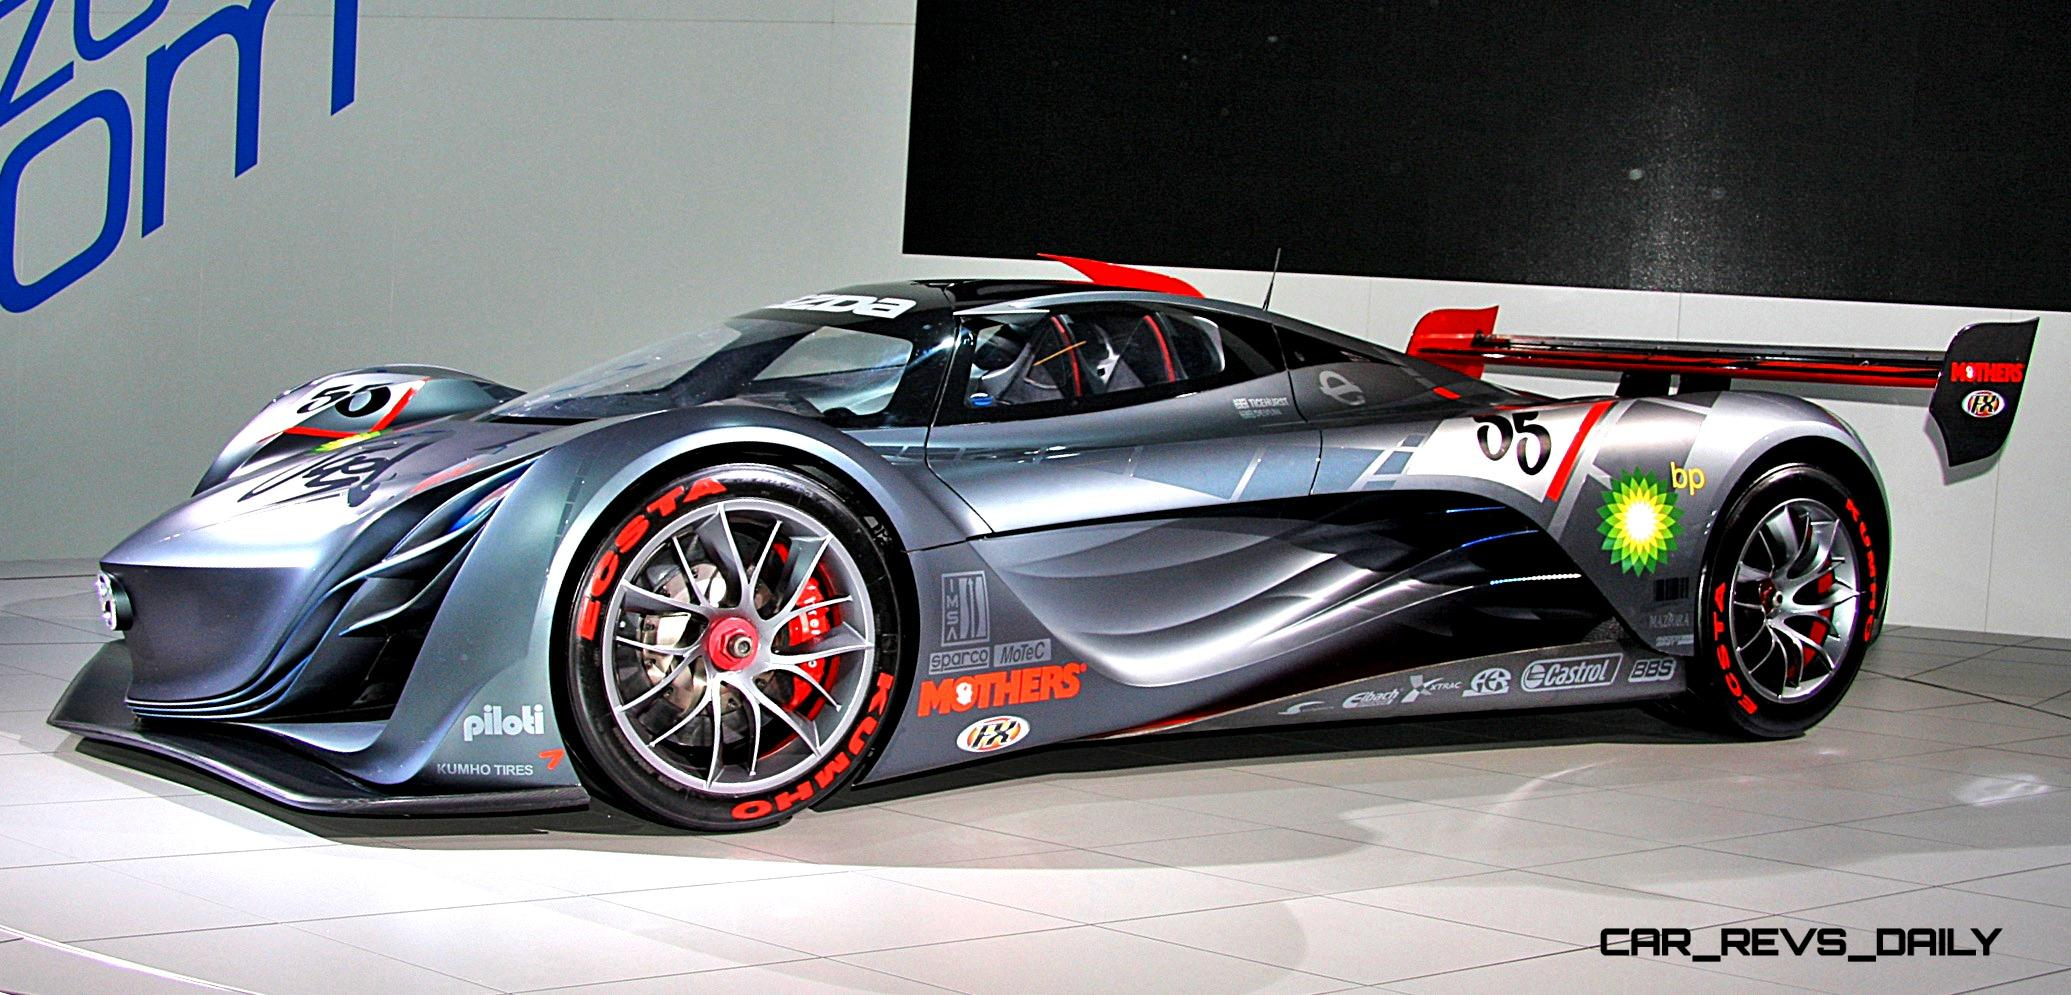 http://www.car-revs-daily.com/wp-content/uploads/Concept-Flashback-2008-Mazda-Furai-is-450HP-Rotary-LMP2-Car-That-Met-Two-Tragic-Ends-25.jpg